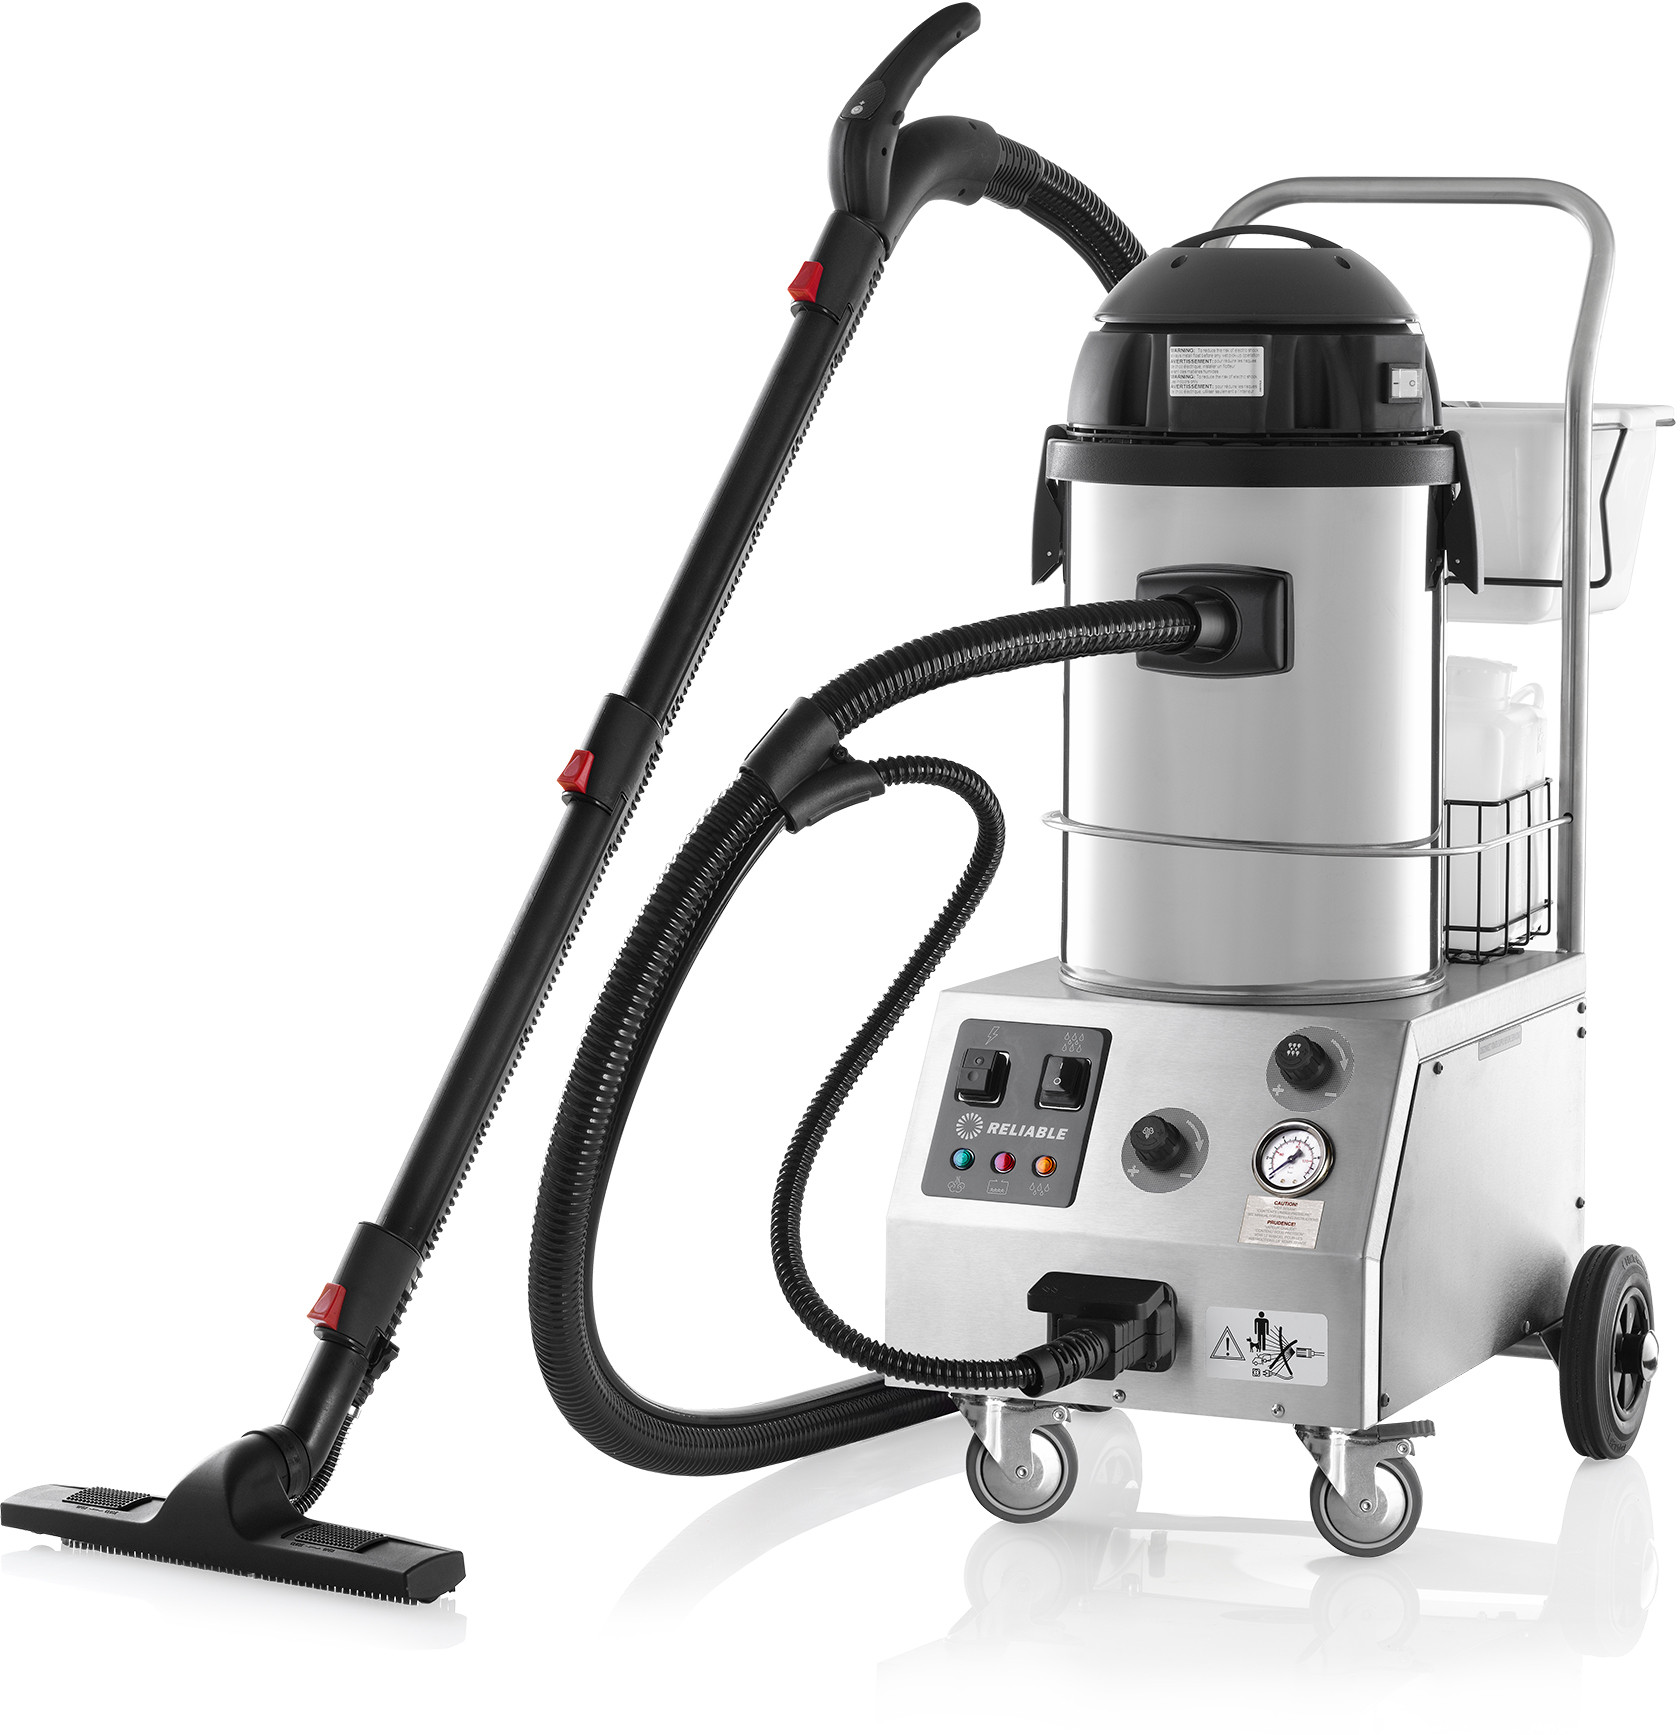 Reliable Corporation Tandem Pro Commercial Steam & Vacuum Cleaner with Auto Refill & Accessory Kit